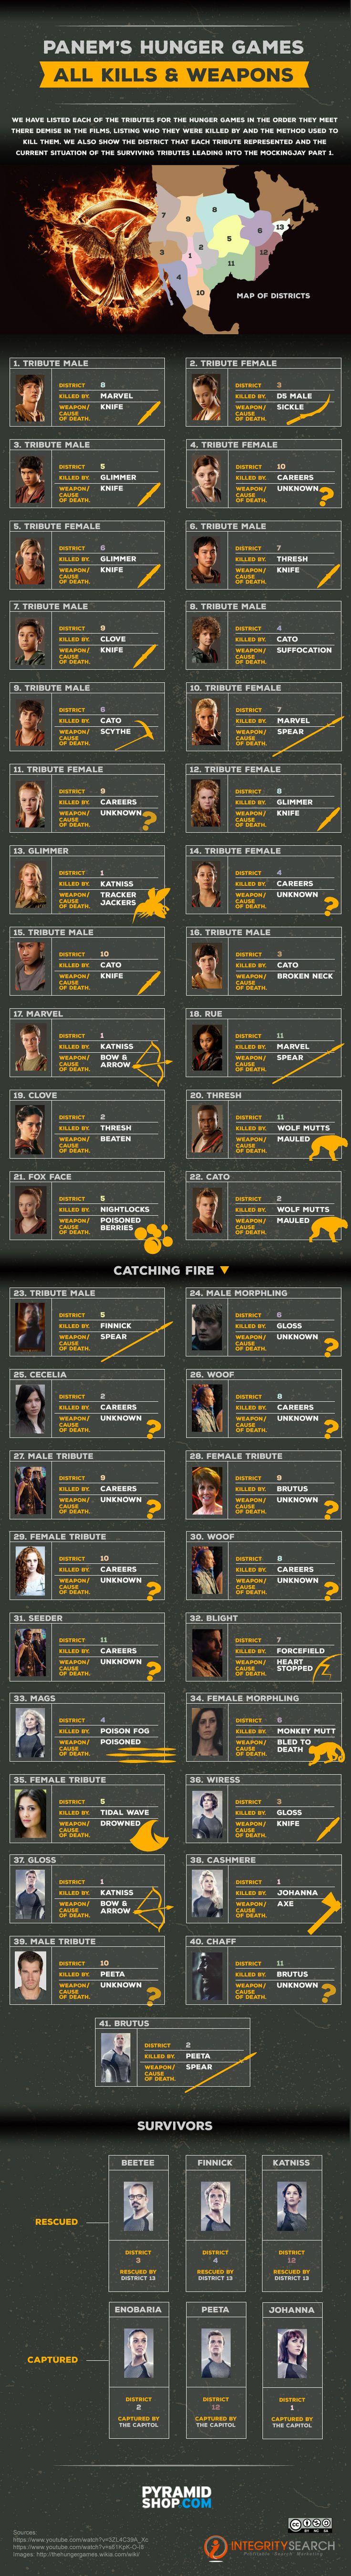 HUNGER GAMES: ALL KILLS AND WEAPONS USED [INFOGRAPHIC] #HUNGERGAMES #INFOGRAPHIC